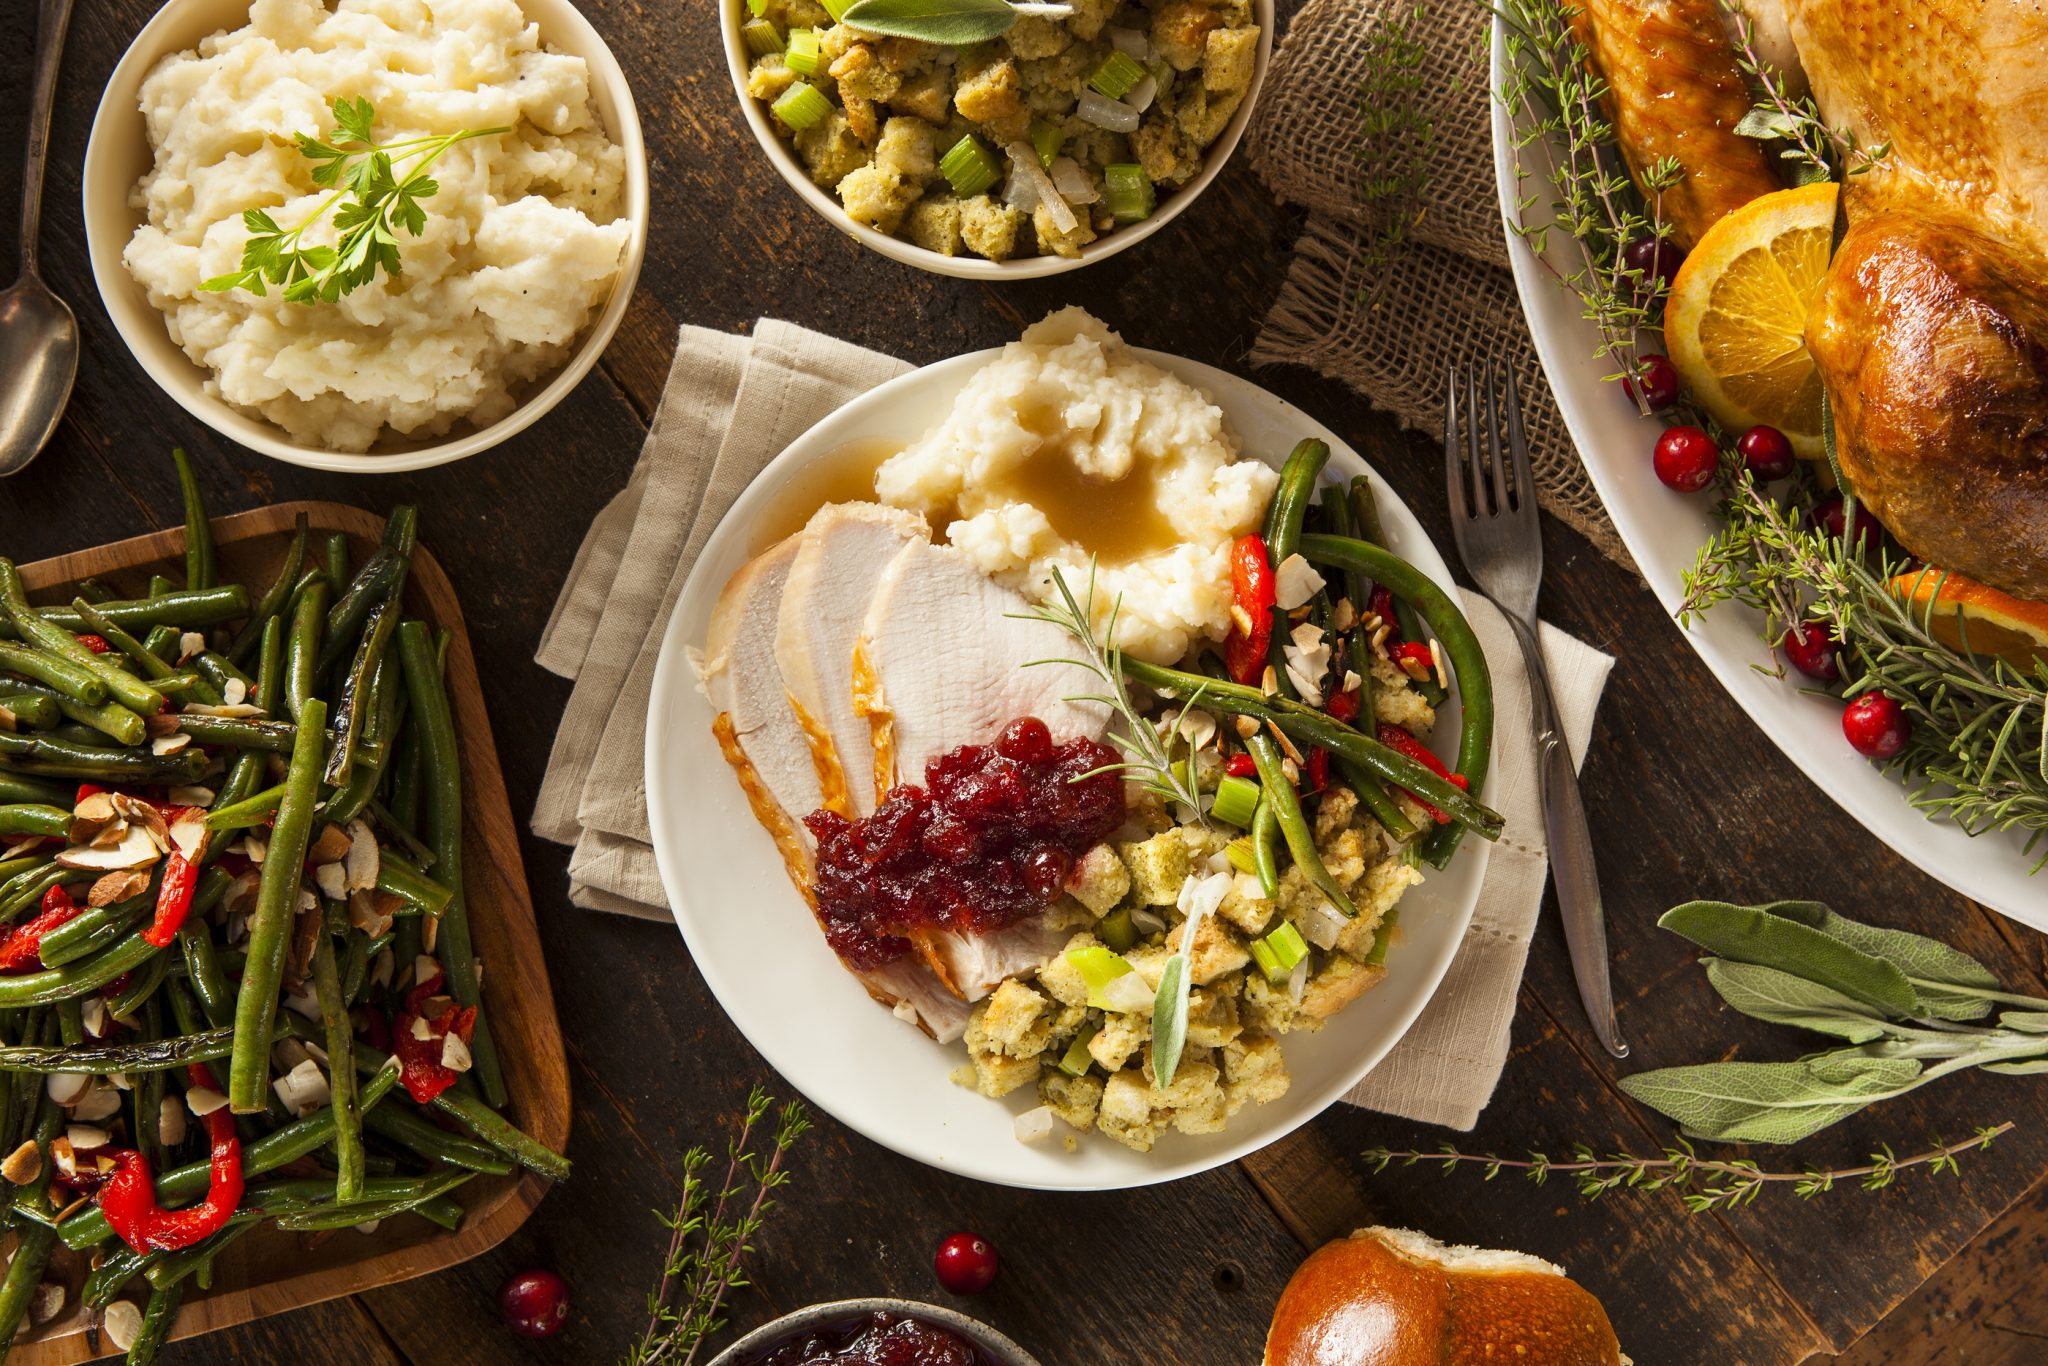 4 Mouth-Watering Restaurants Serving Thanksgiving Dinner